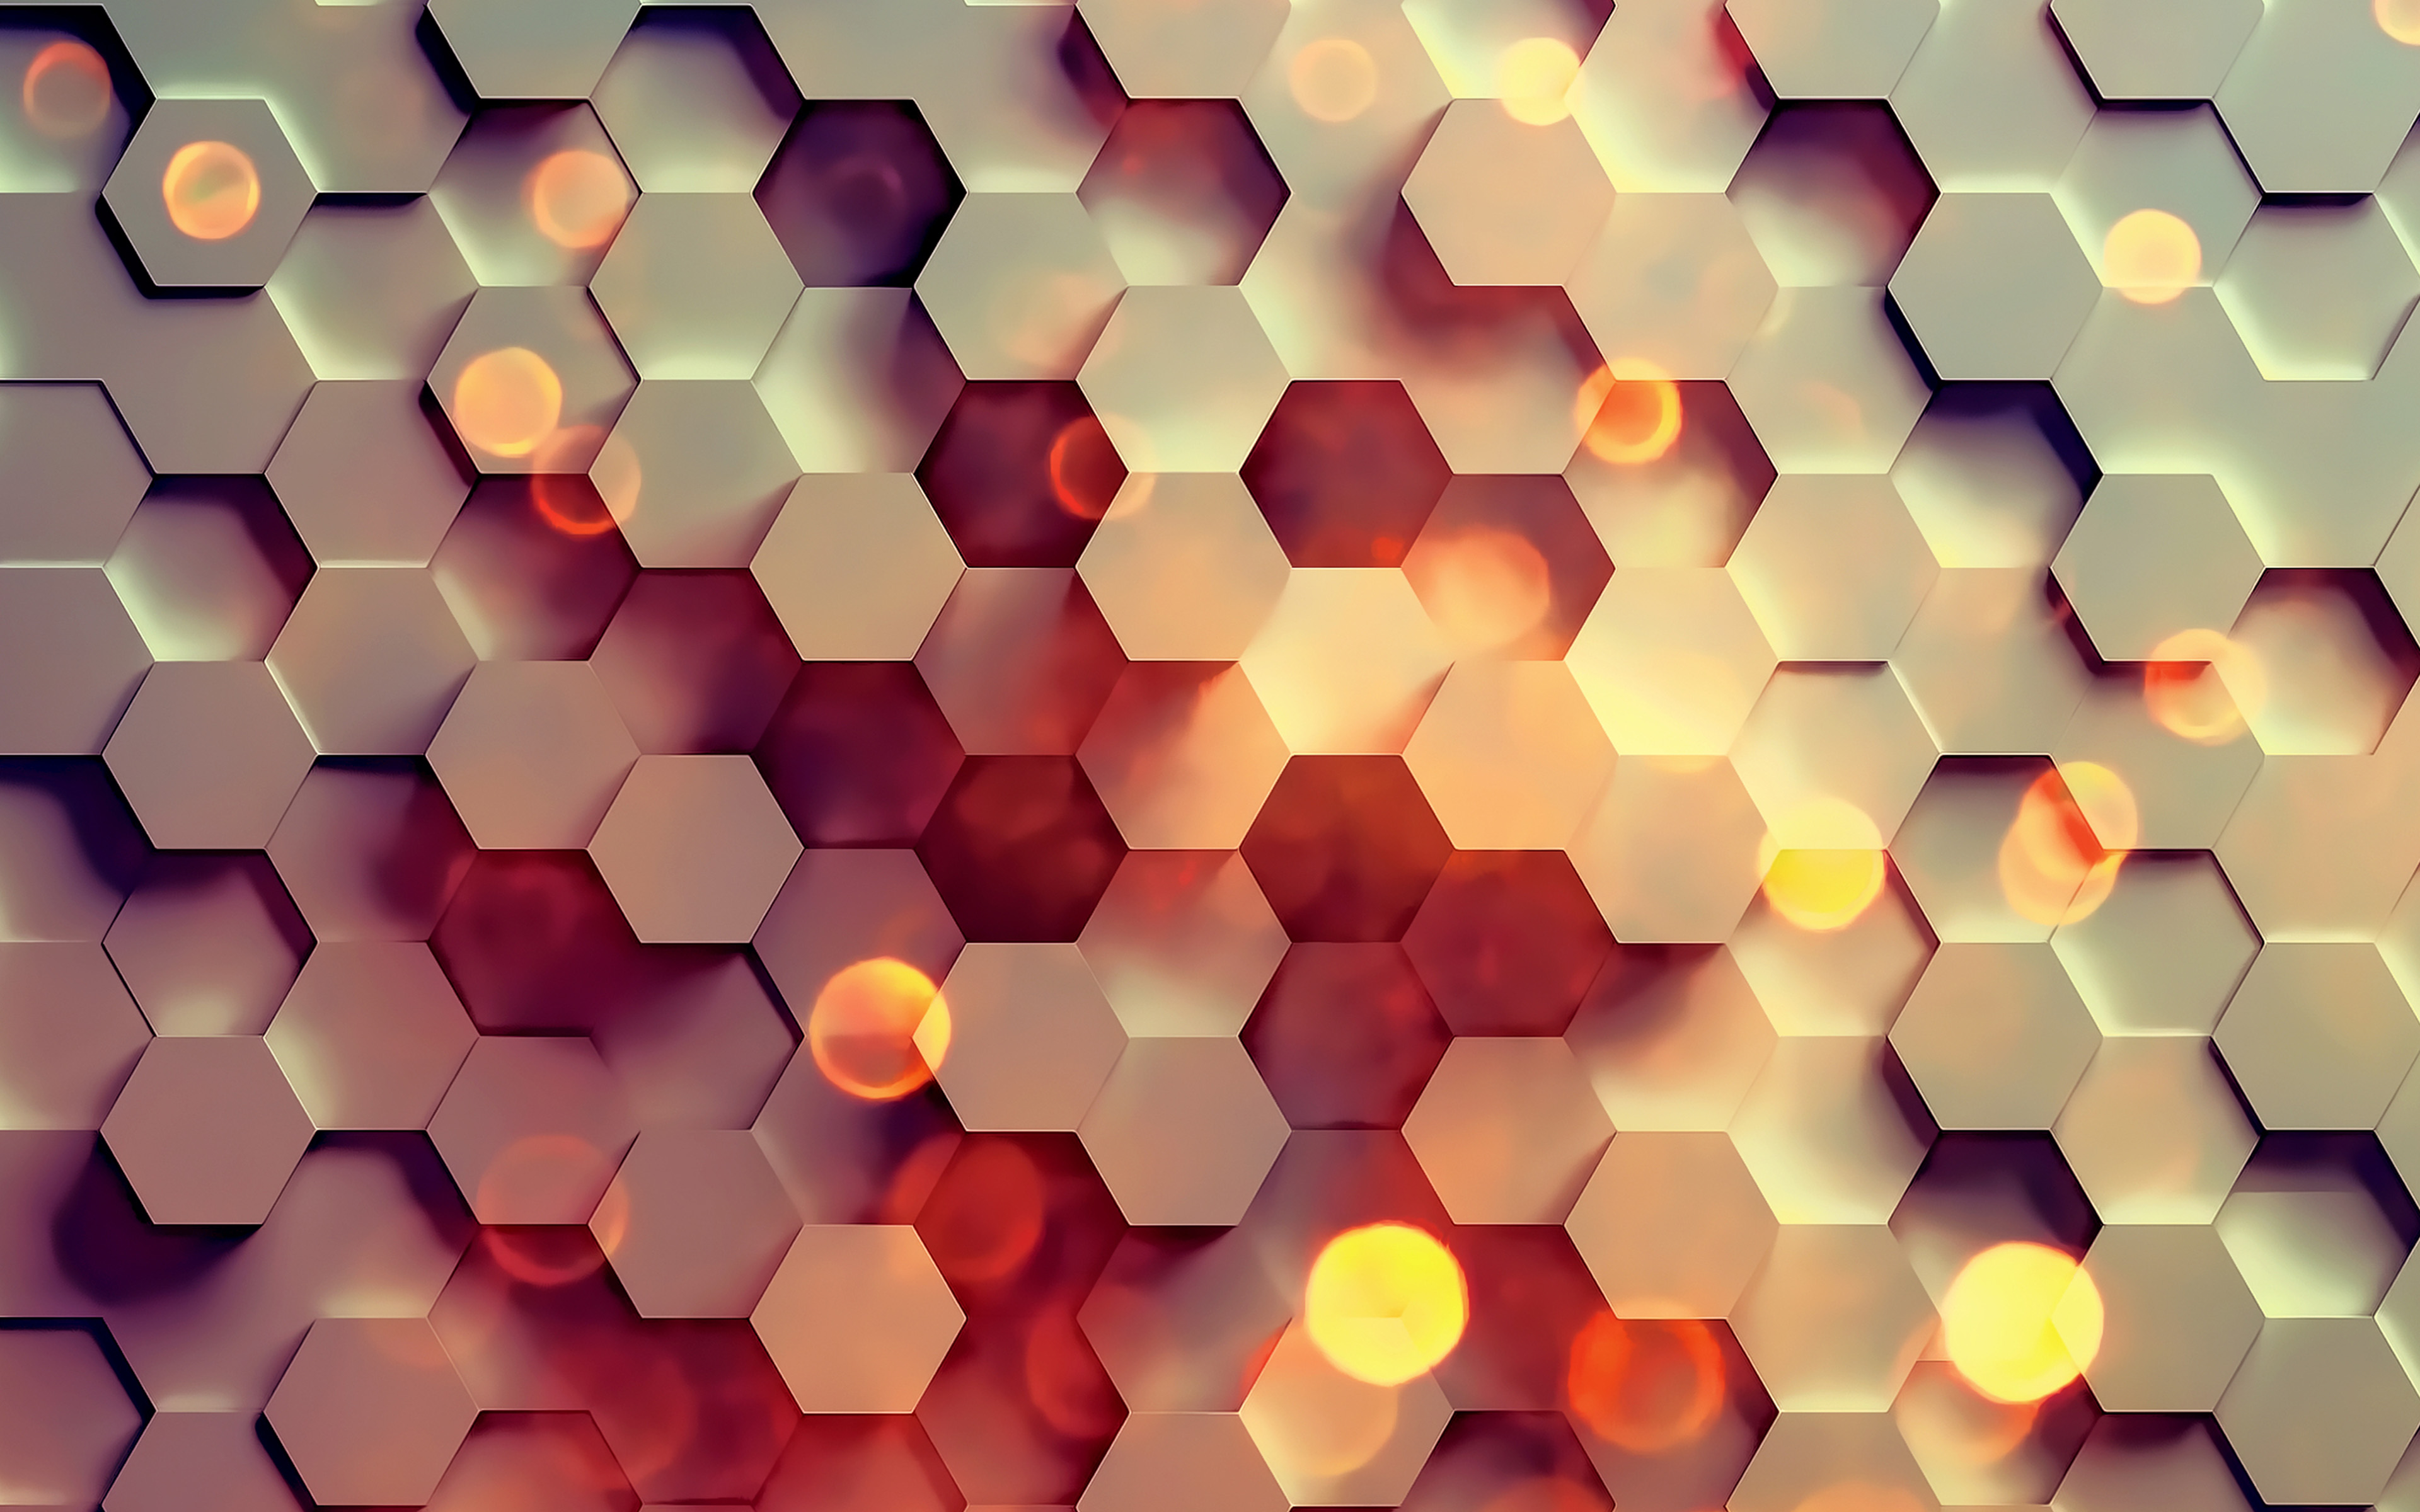 Vy40 Honey Hexagon Digital Abstract Pattern Background